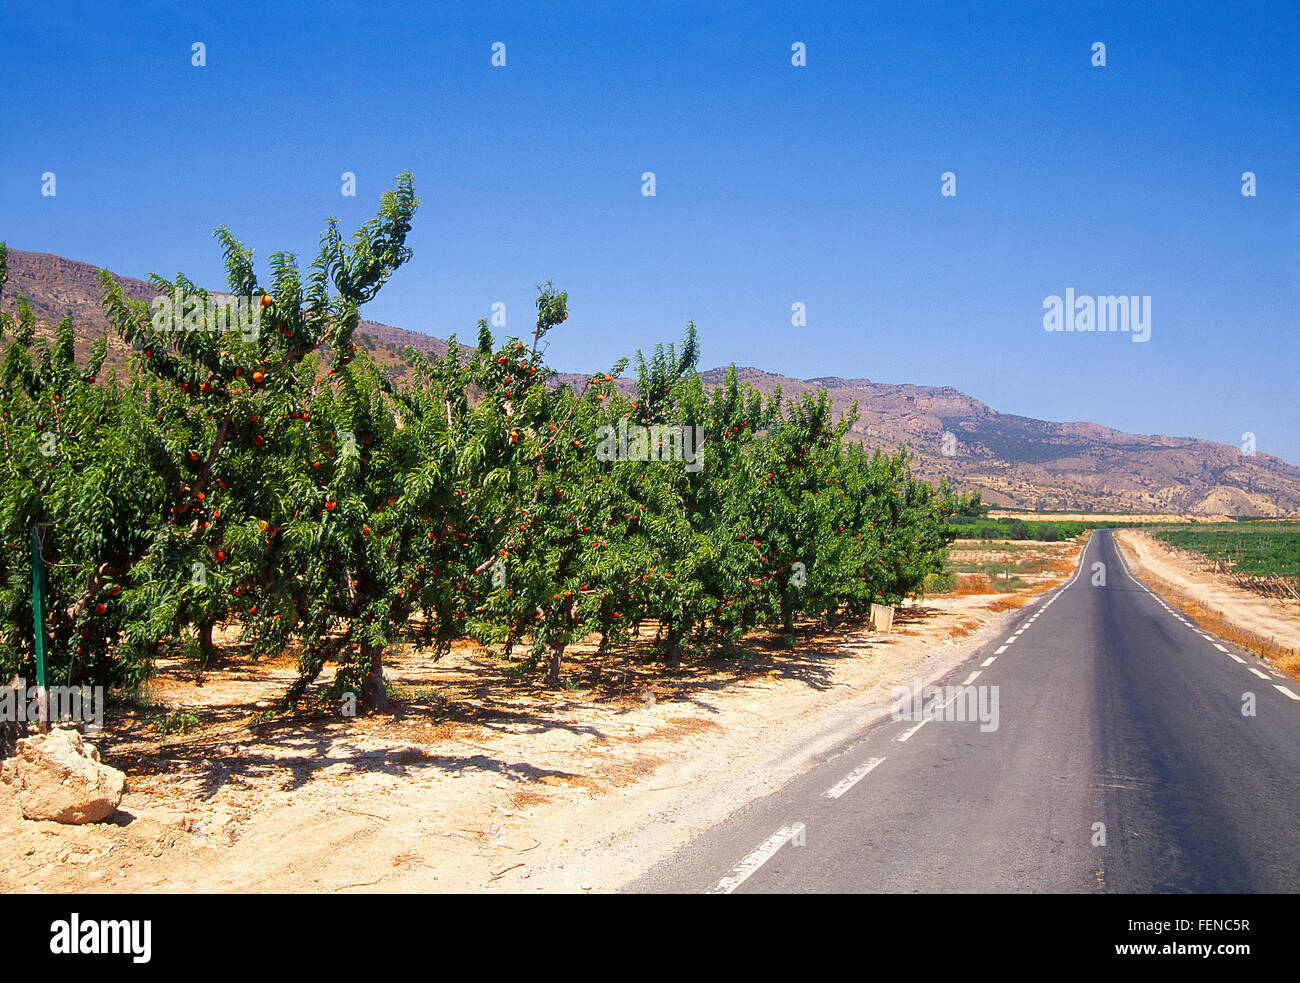 Fruit trees and side road. Murcia, Spain. - Stock Image